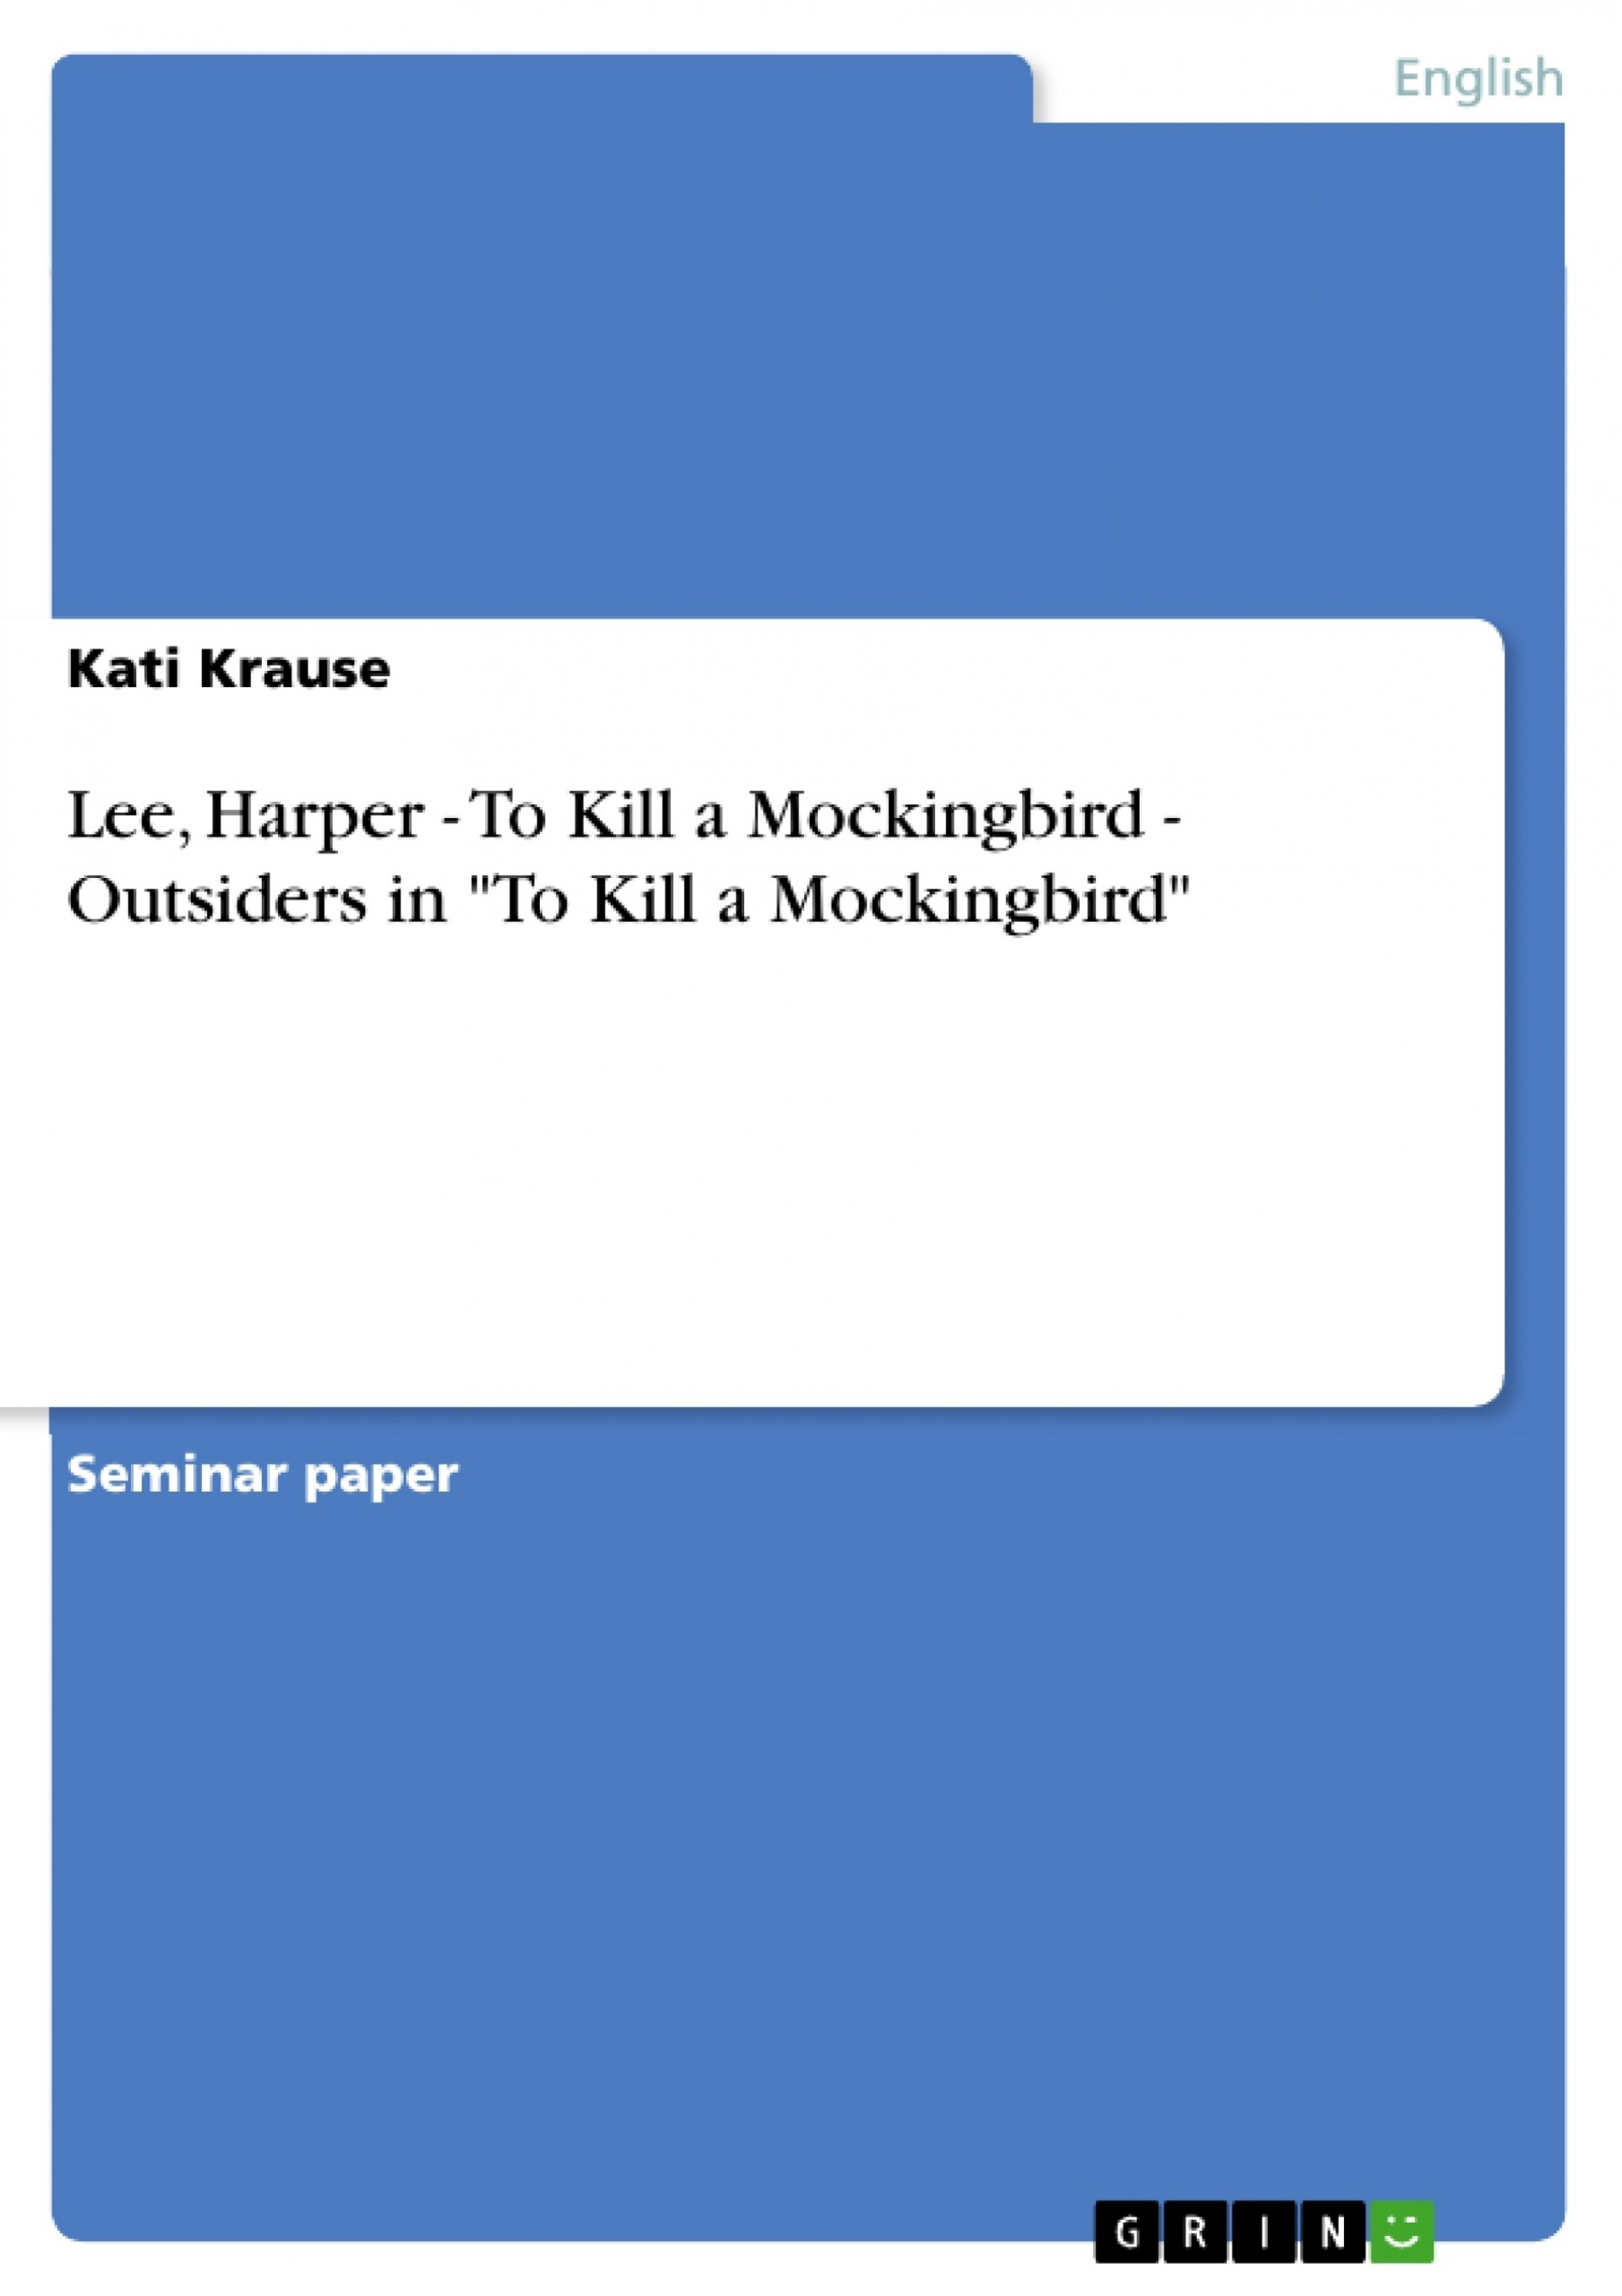 019 Essay Example Questions For To Kill Mockingbird Part 102122 0 Impressive A 1 Discussion Chapter 16 14 15 1920